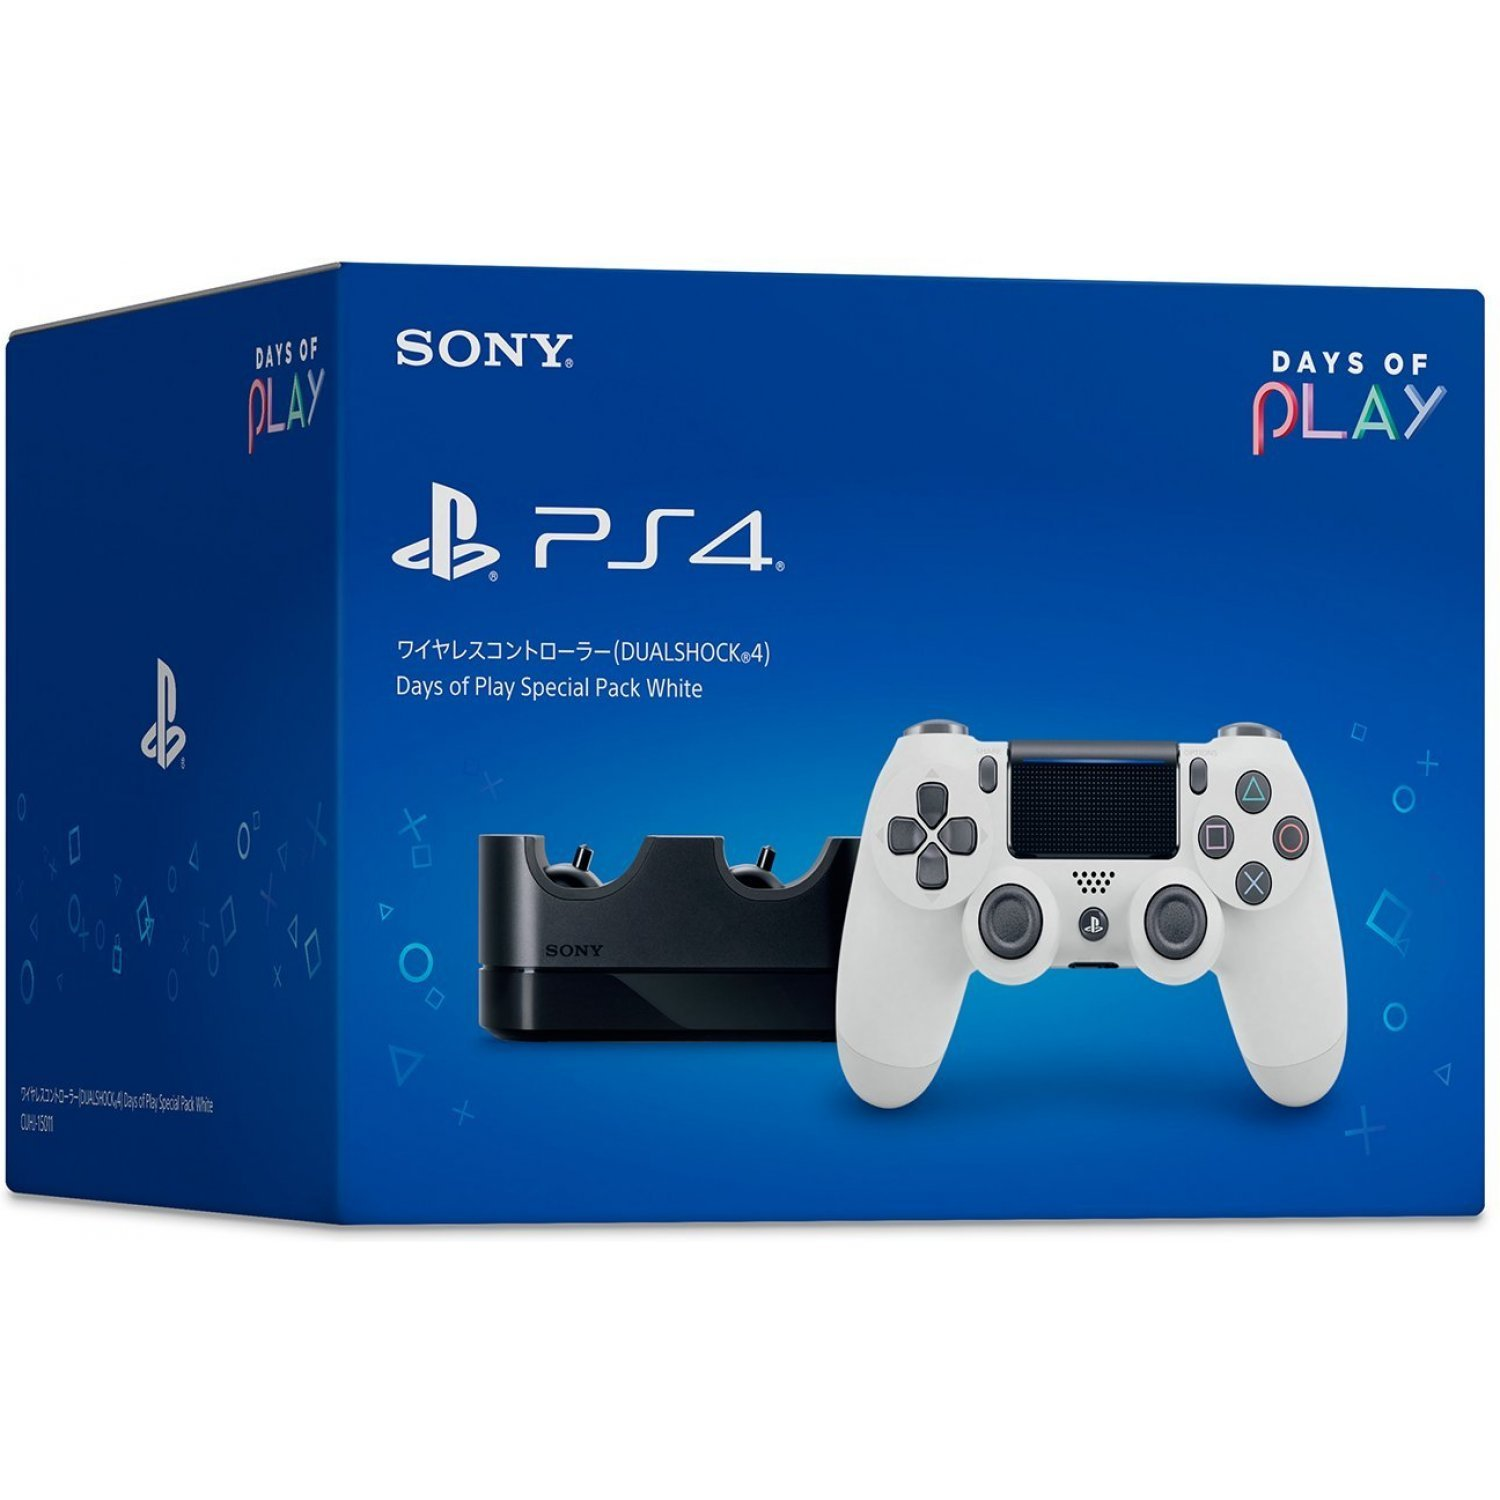 Dualshock 4 Days Of Play Special Pack Glacier White Limited Edition Stik Ps4 New Model